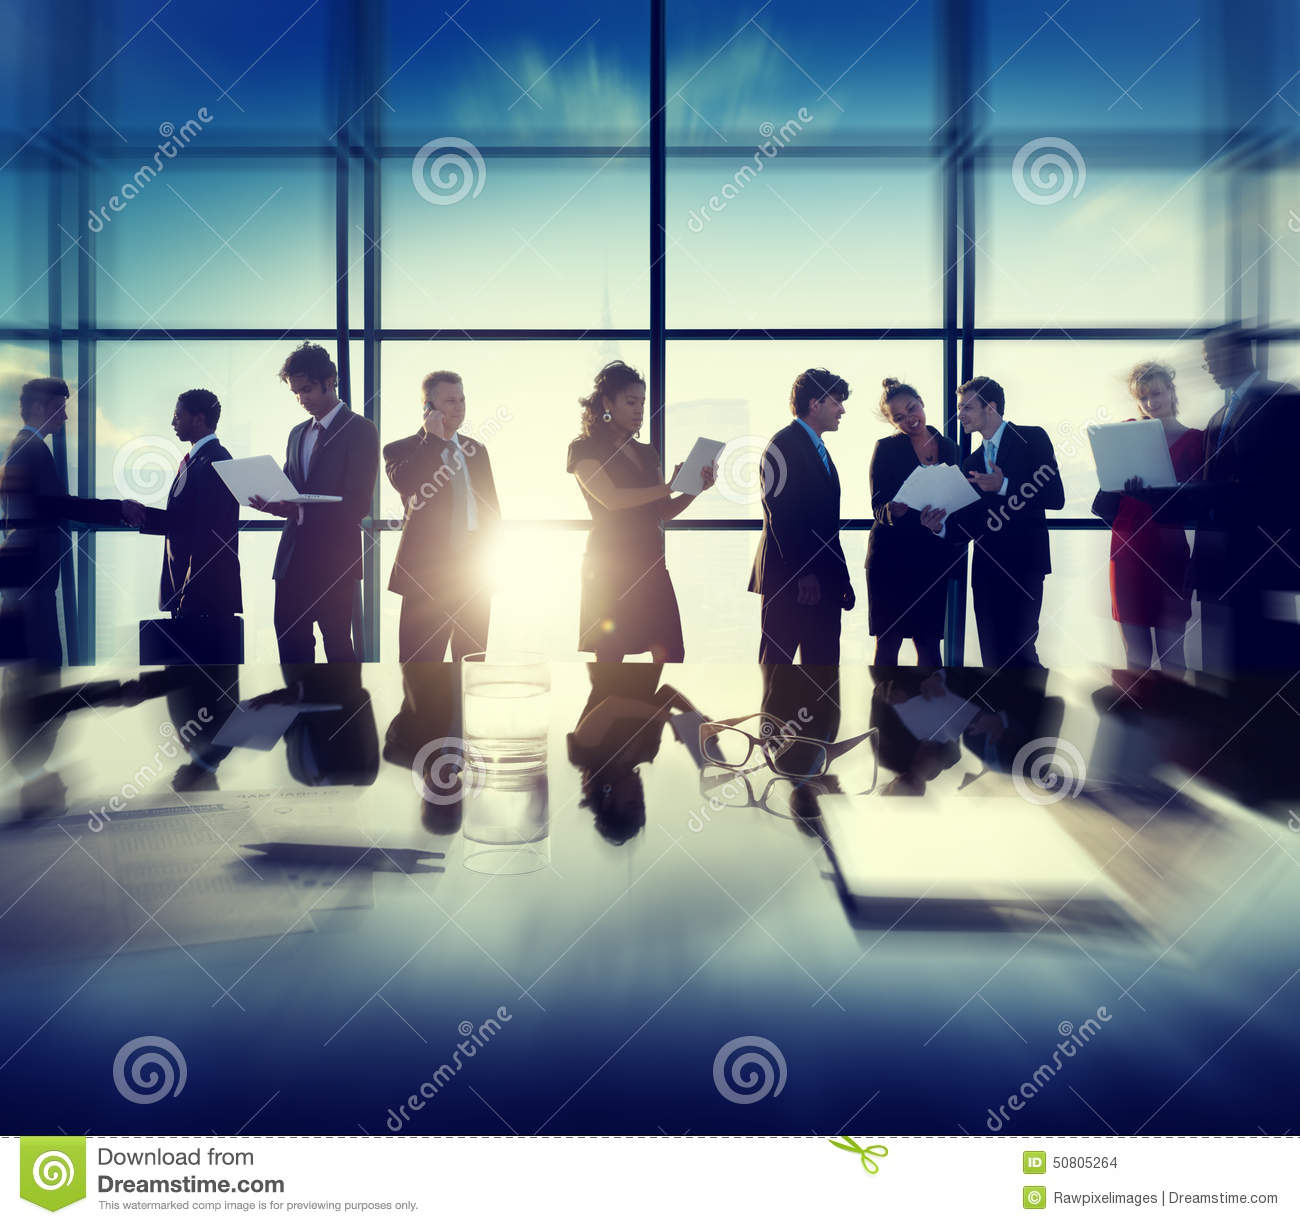 Business Corporate People Digital Devices Meeting Concept